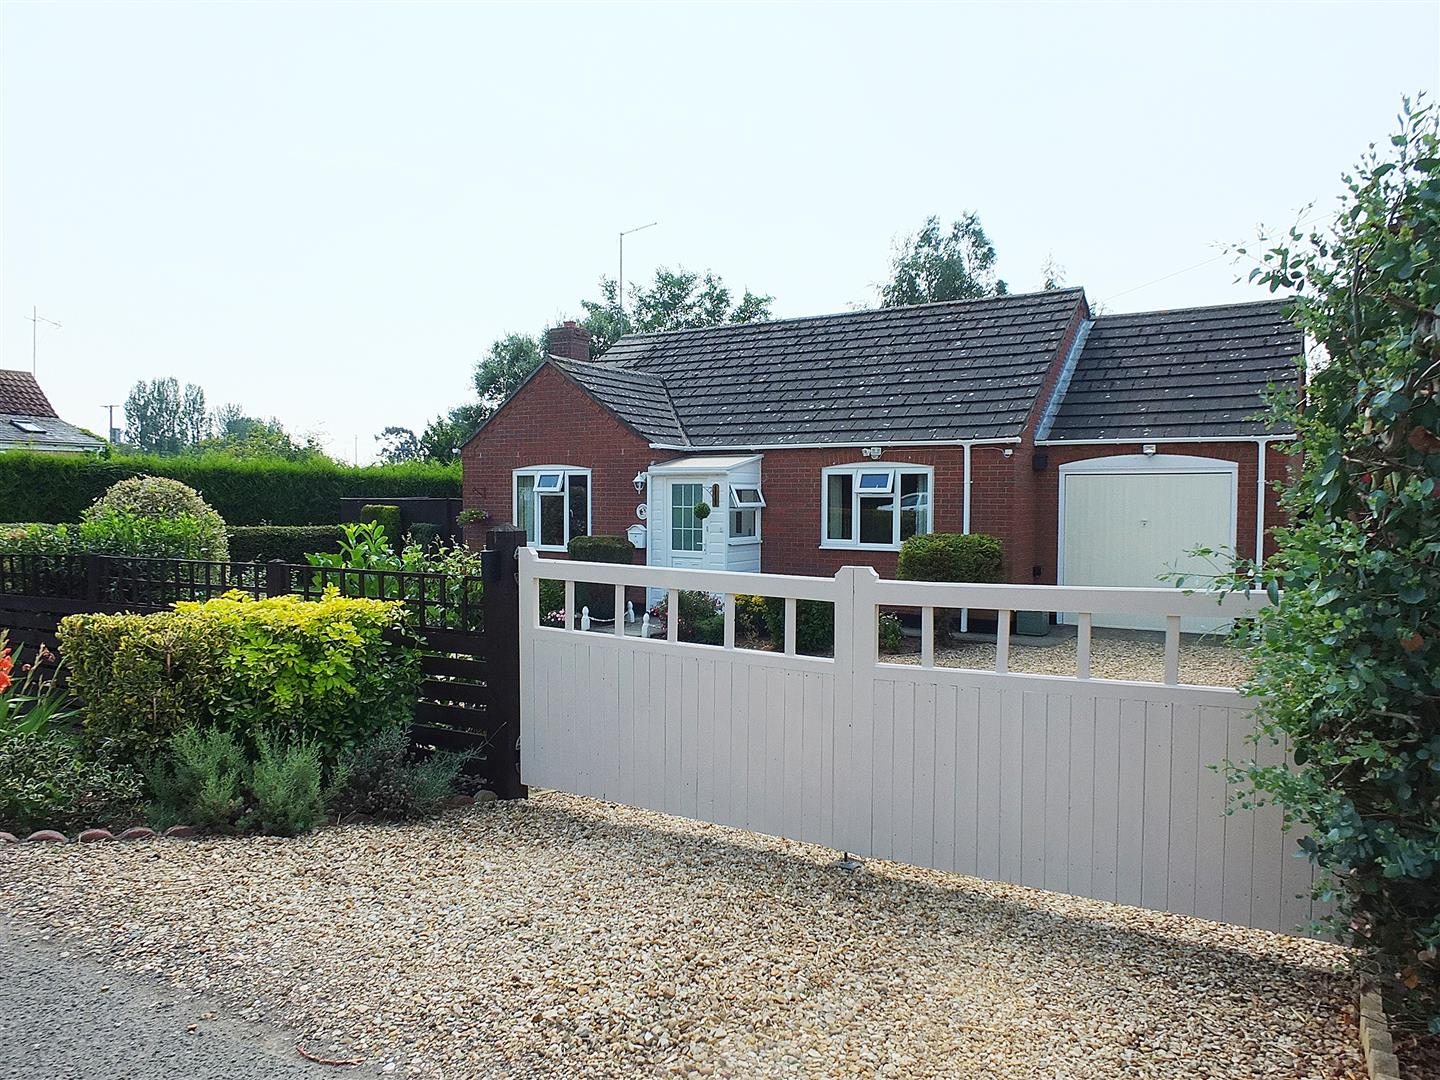 2 bed detached bungalow for sale in Holbeach Drove Spalding, PE12 0PS  - Property Image 1